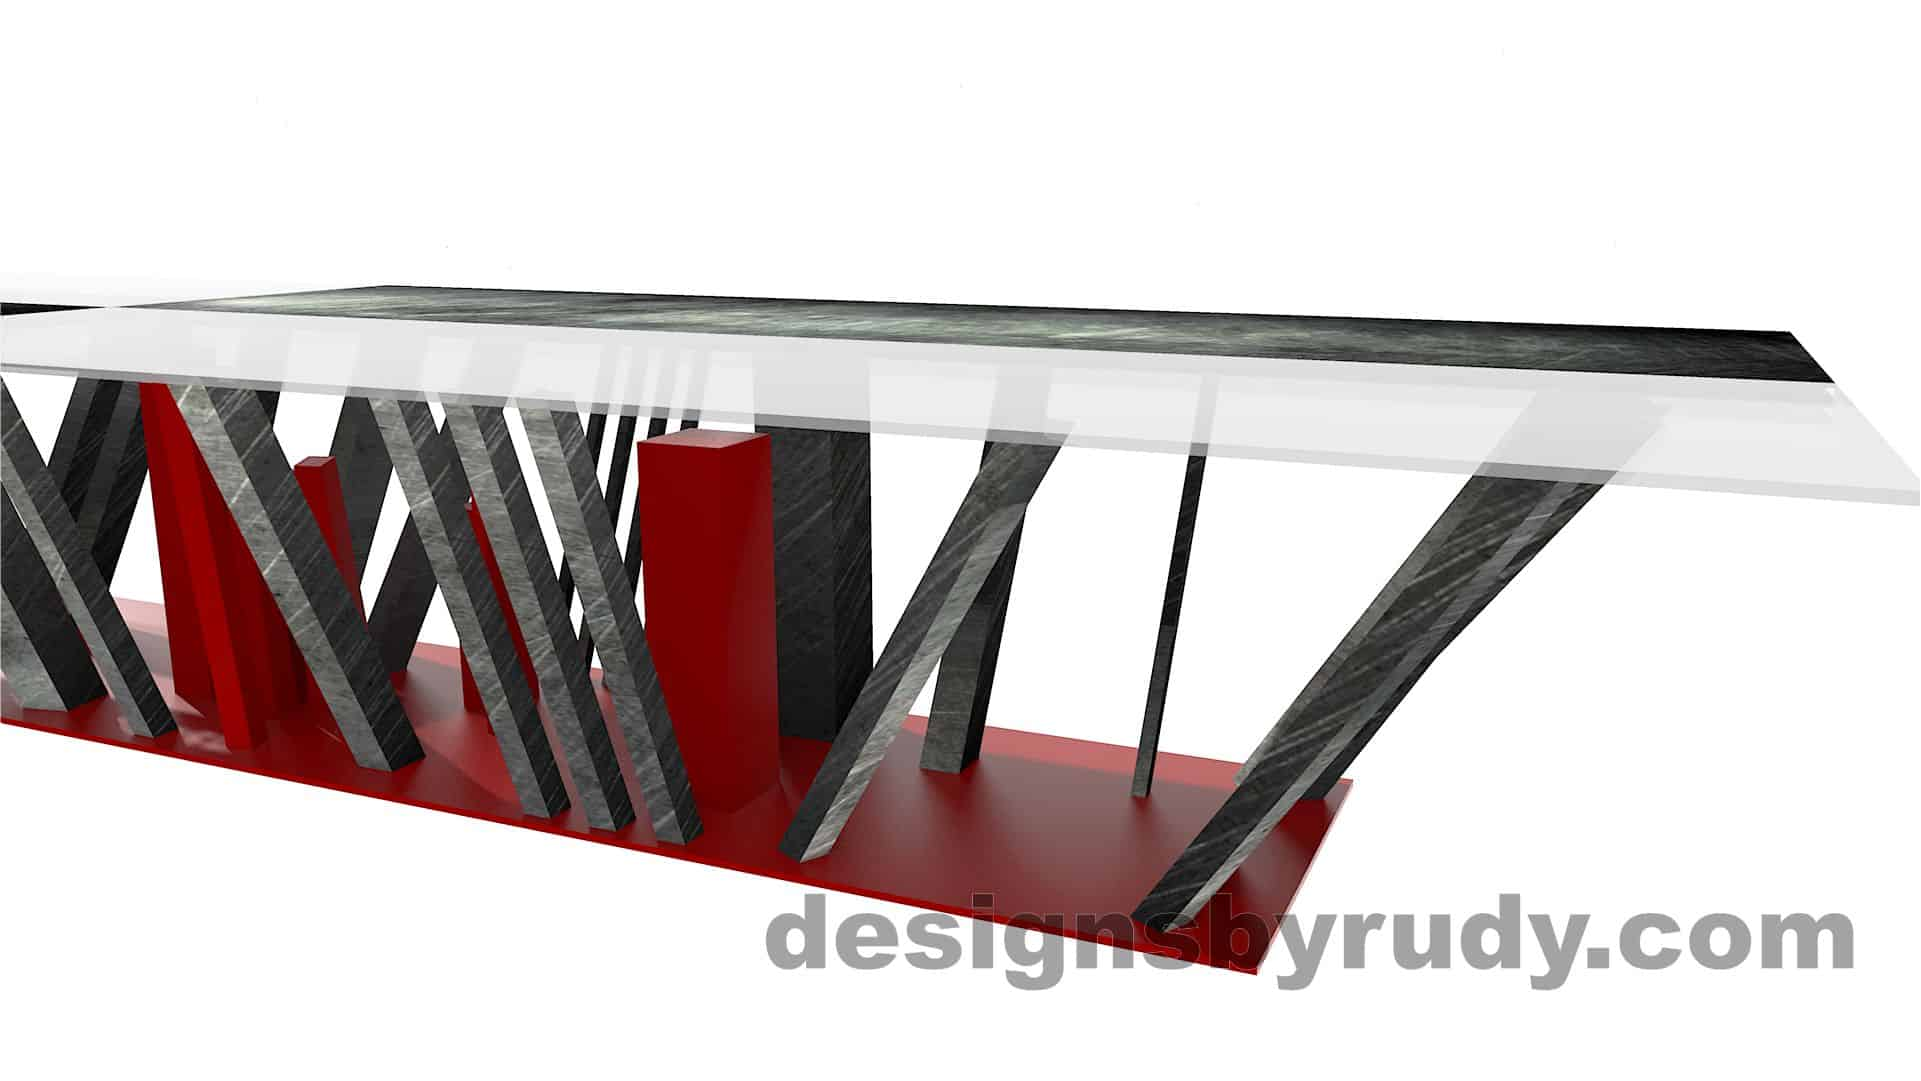 Custom conference table, steel base, glass and steel top, side-end section view, by designs by rudy